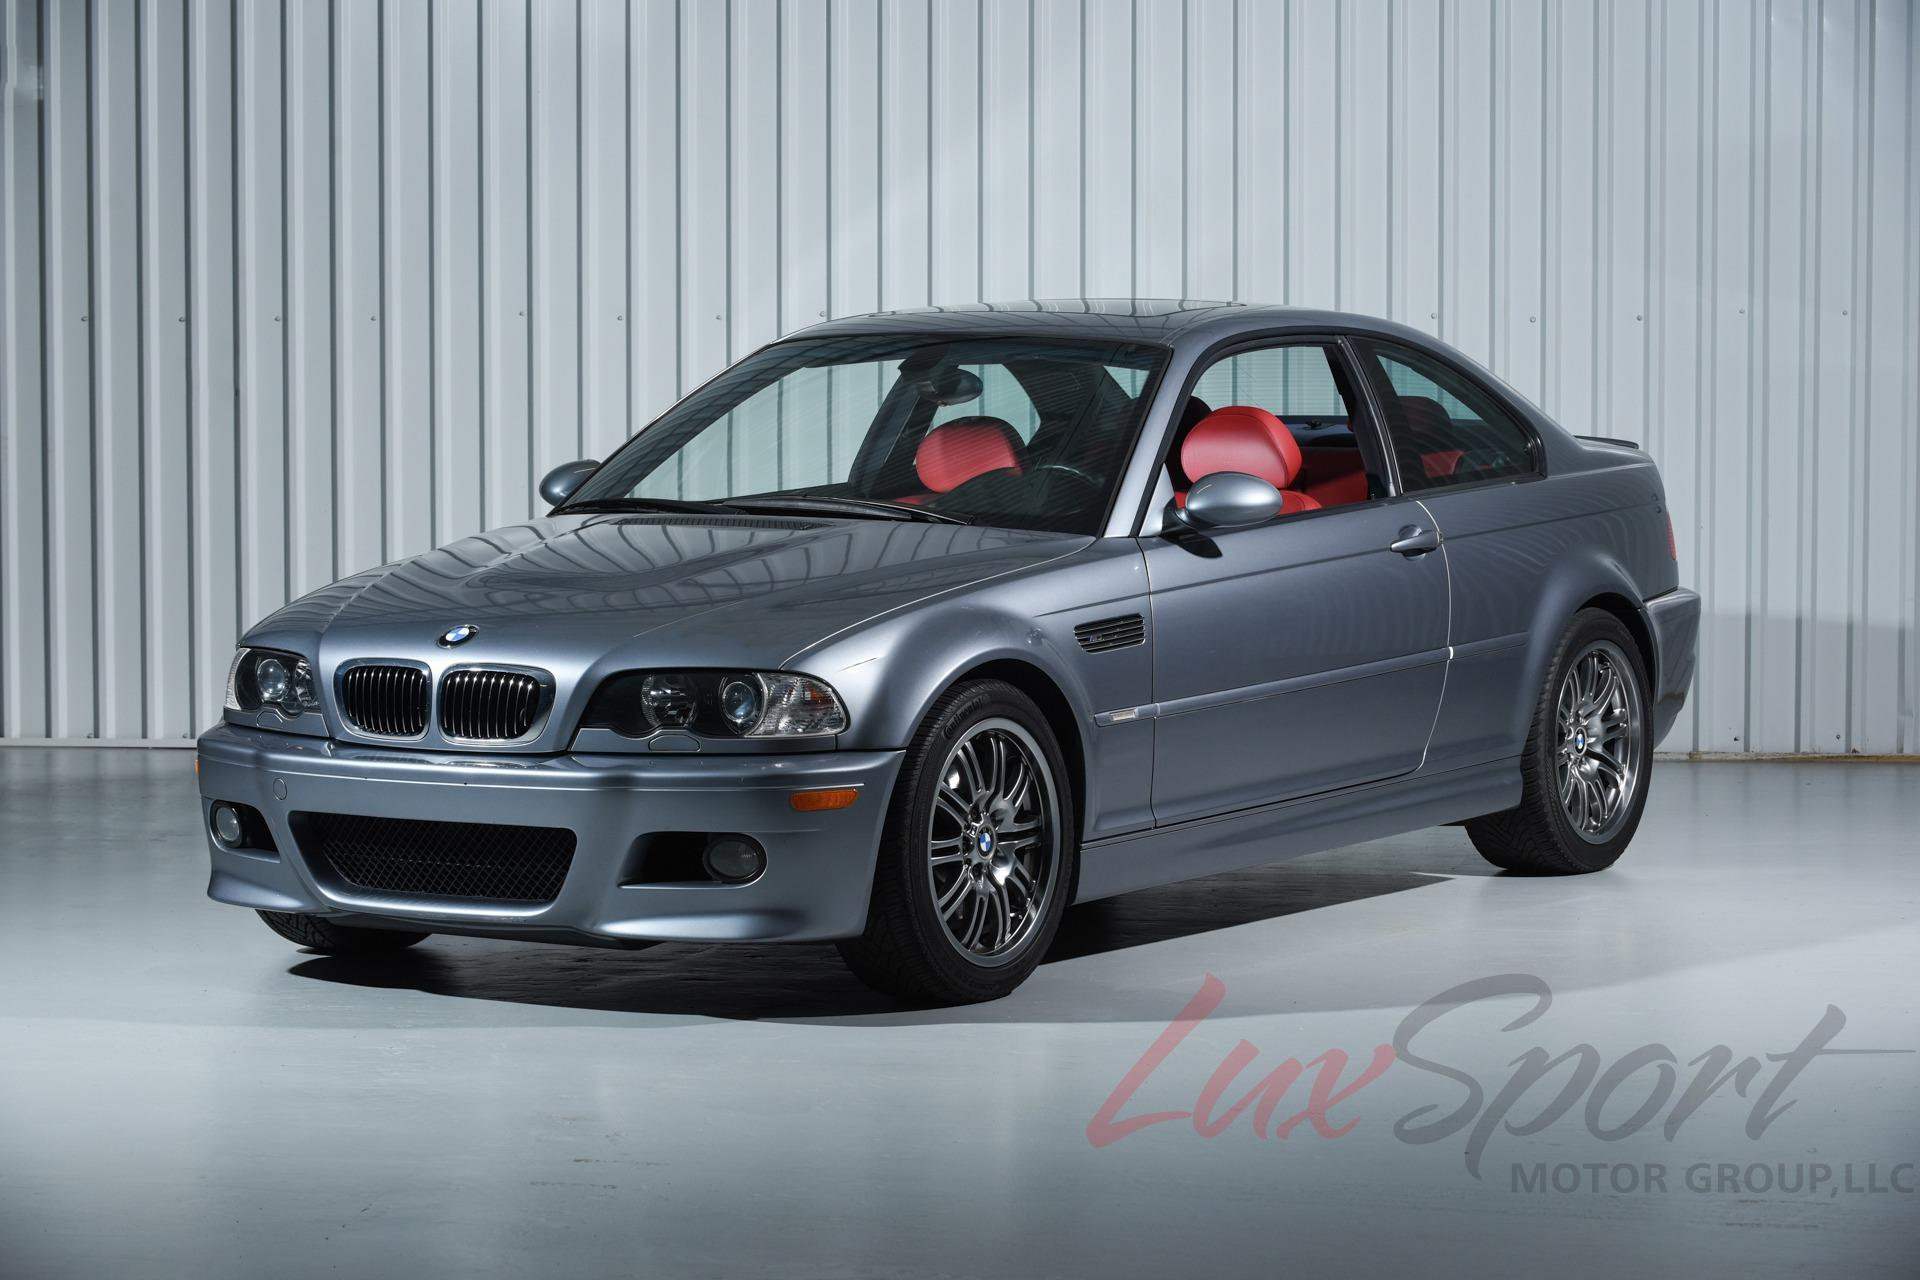 LuxSport Motor Group  Luxury and Exotic Cars For Sale